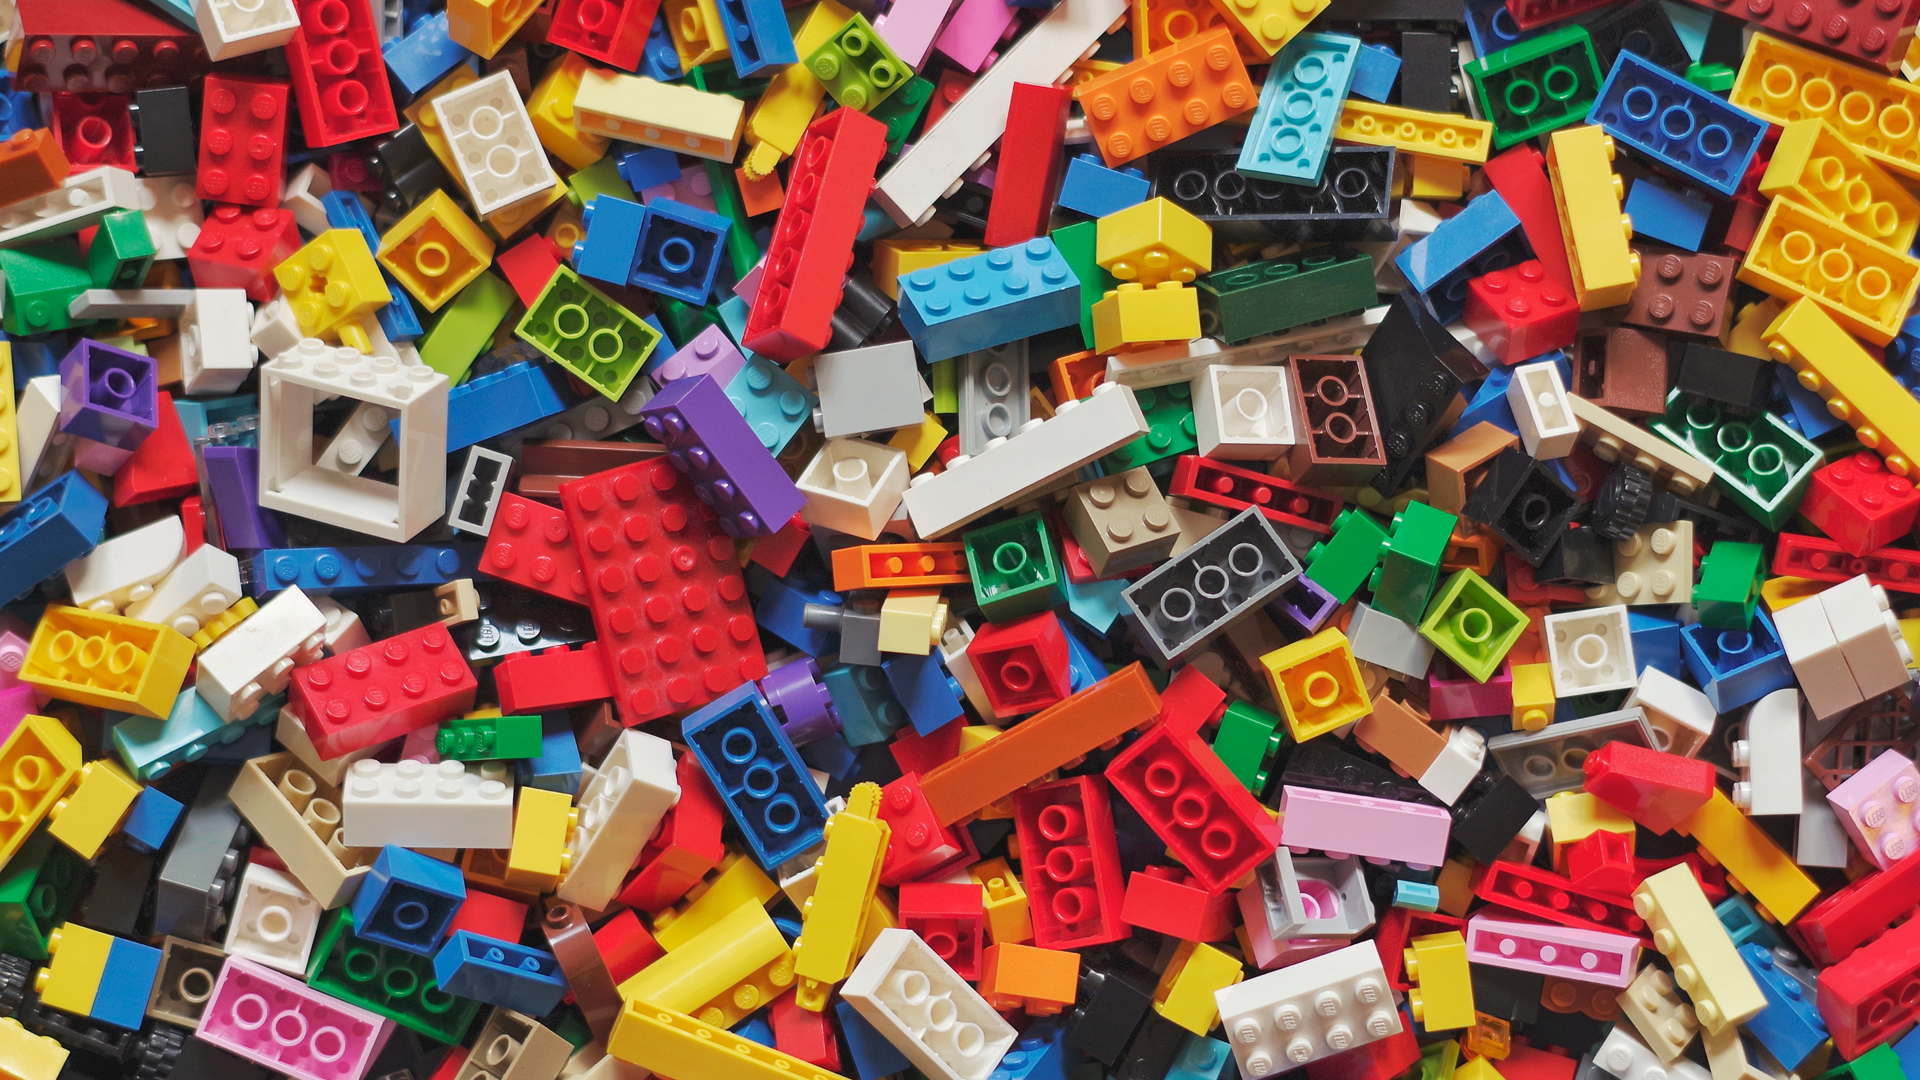 9 incredible child development benefits of playing with LEGO and other construction toys